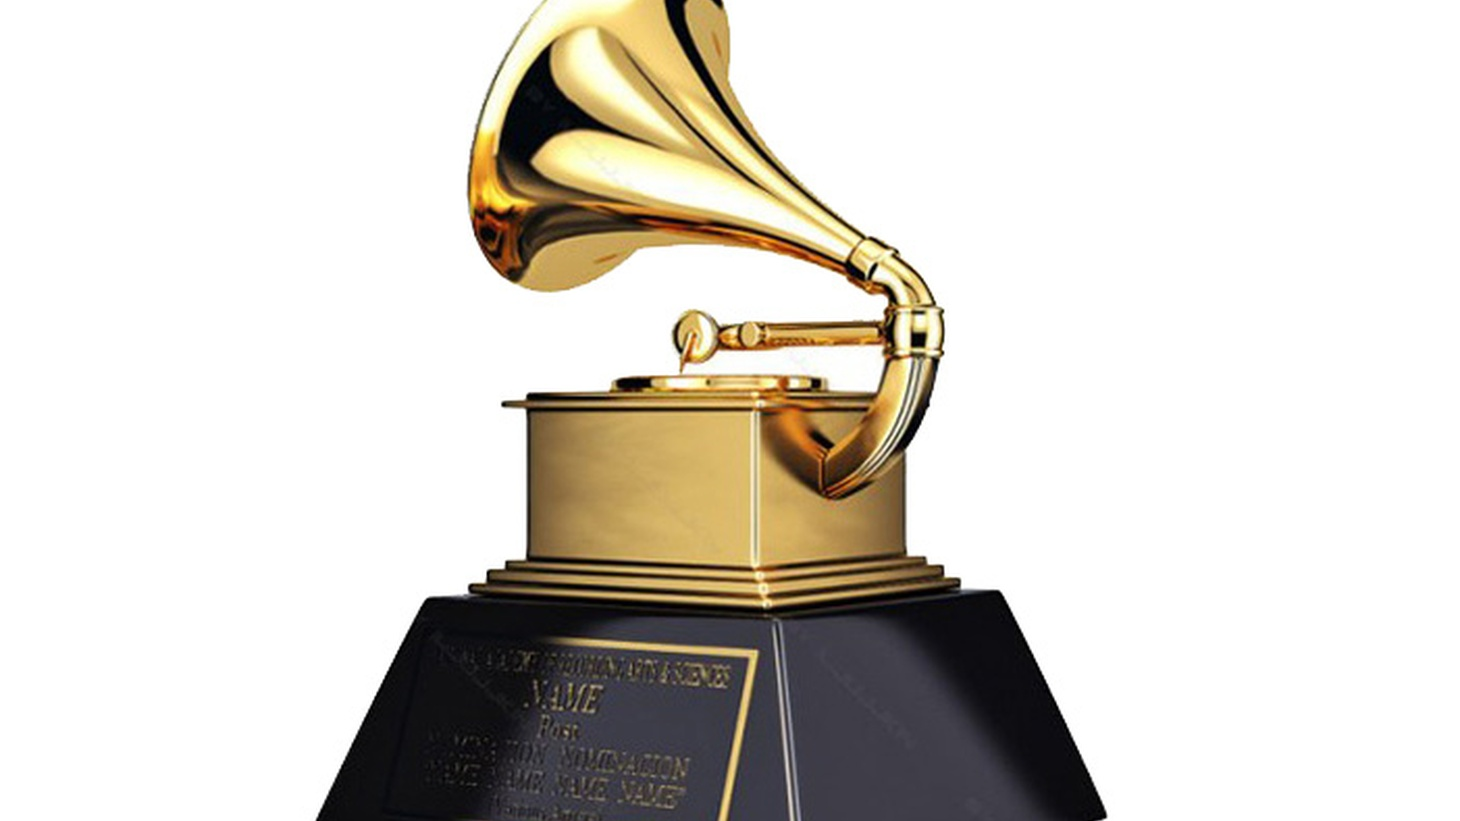 It's Grammy Awards time! This week on Rhythm Planet, Tom features his favorite picks from among the nominees.